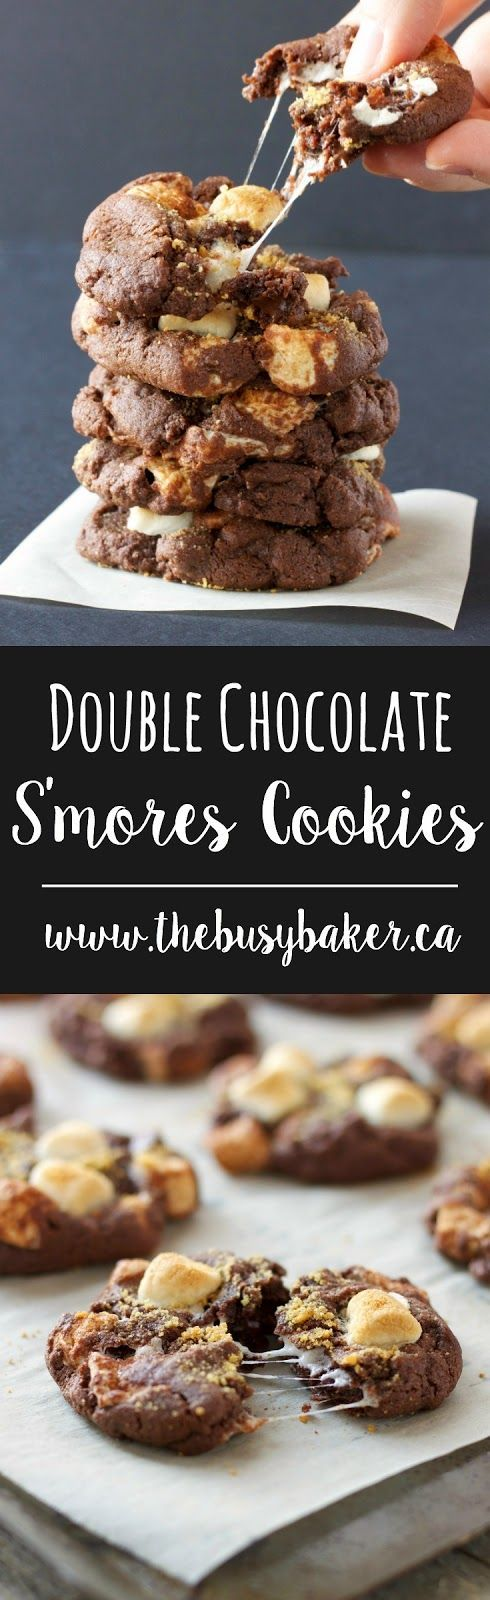 Double Chocolate S'mores Cookies from http://thebusybaker.ca! And a $525 PayPal Cash Giveaway!